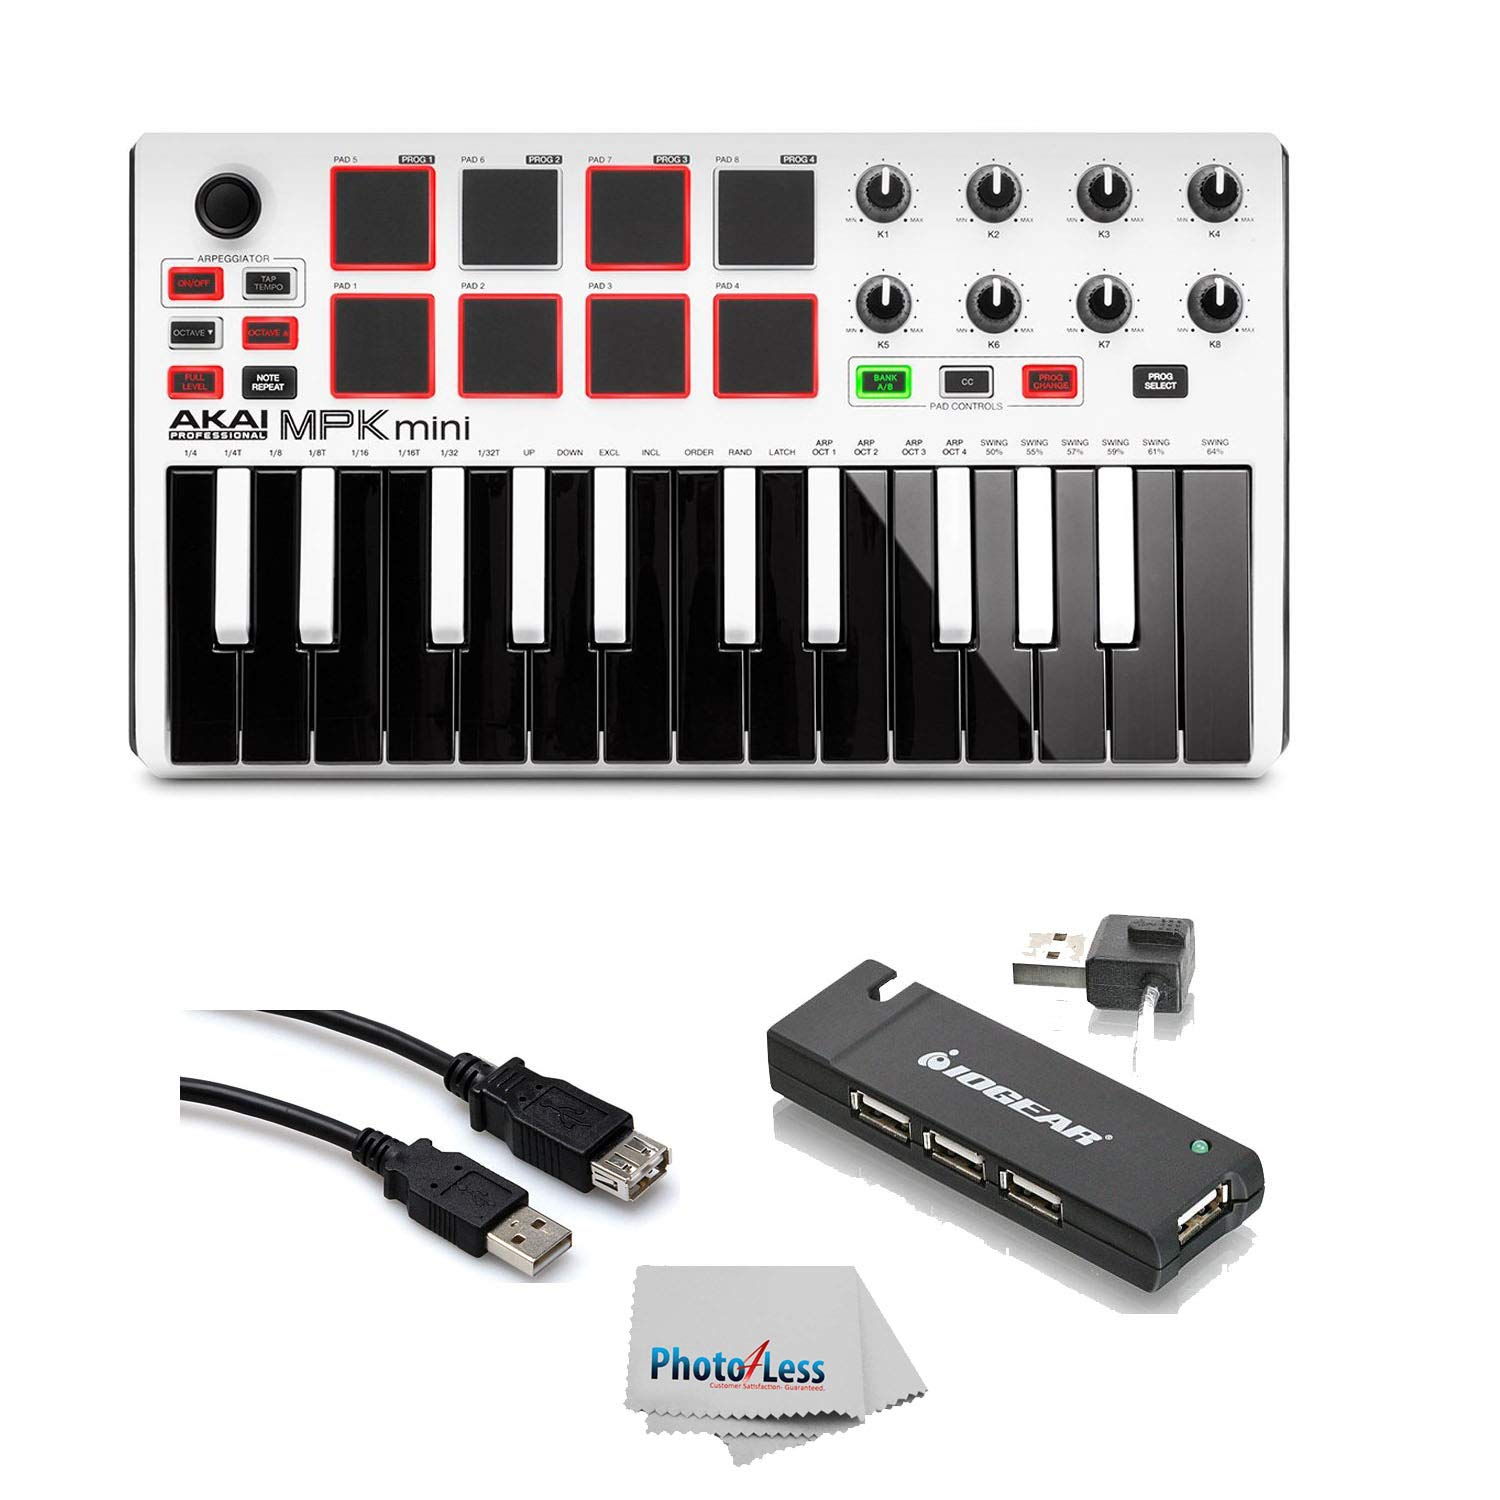 Akai Professional MPK MINI MK2 MKII | 25-Key Ultra-Portable USB MIDI Drum Pad & Keyboard Controller (White)+ 4-Port USB 2.0 Hub + High Speed USB Extension Cable + Clean Cloth by Akai (Image #1)